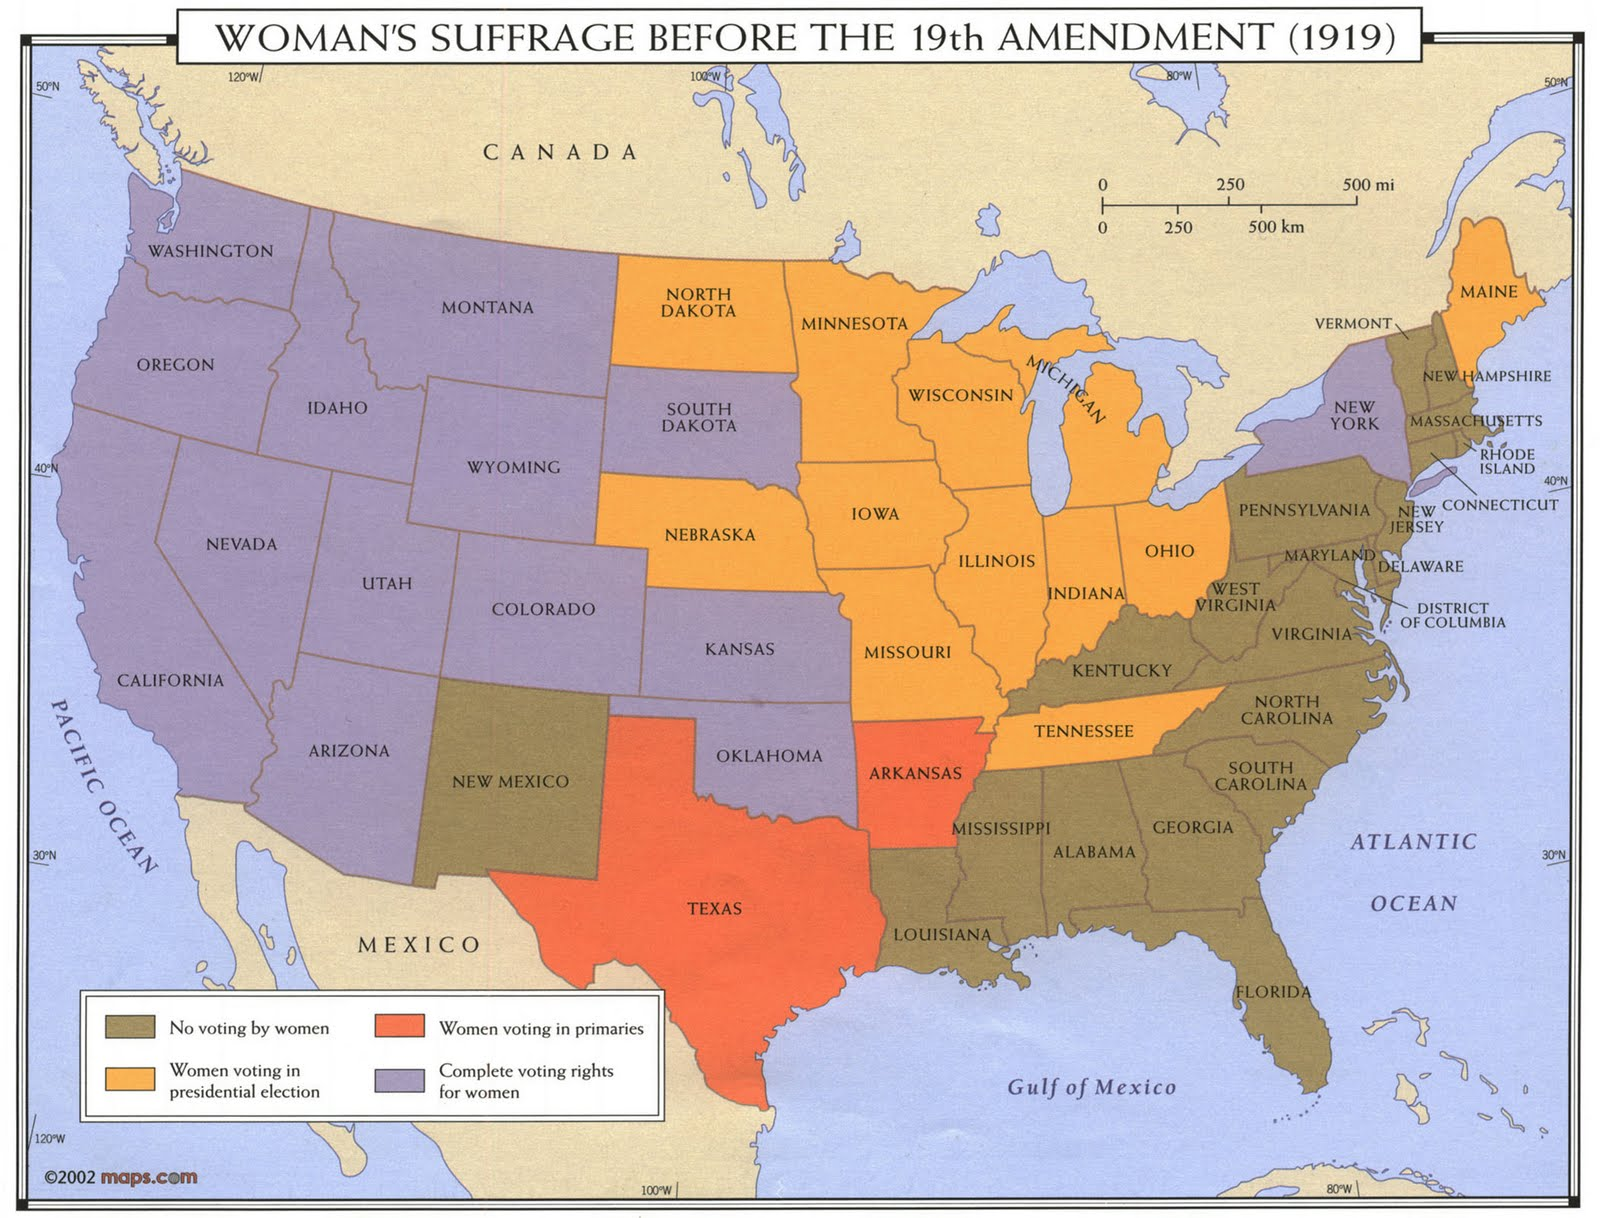 women s suffrage maps from ball state university libraries mark 19th amendment anniversary